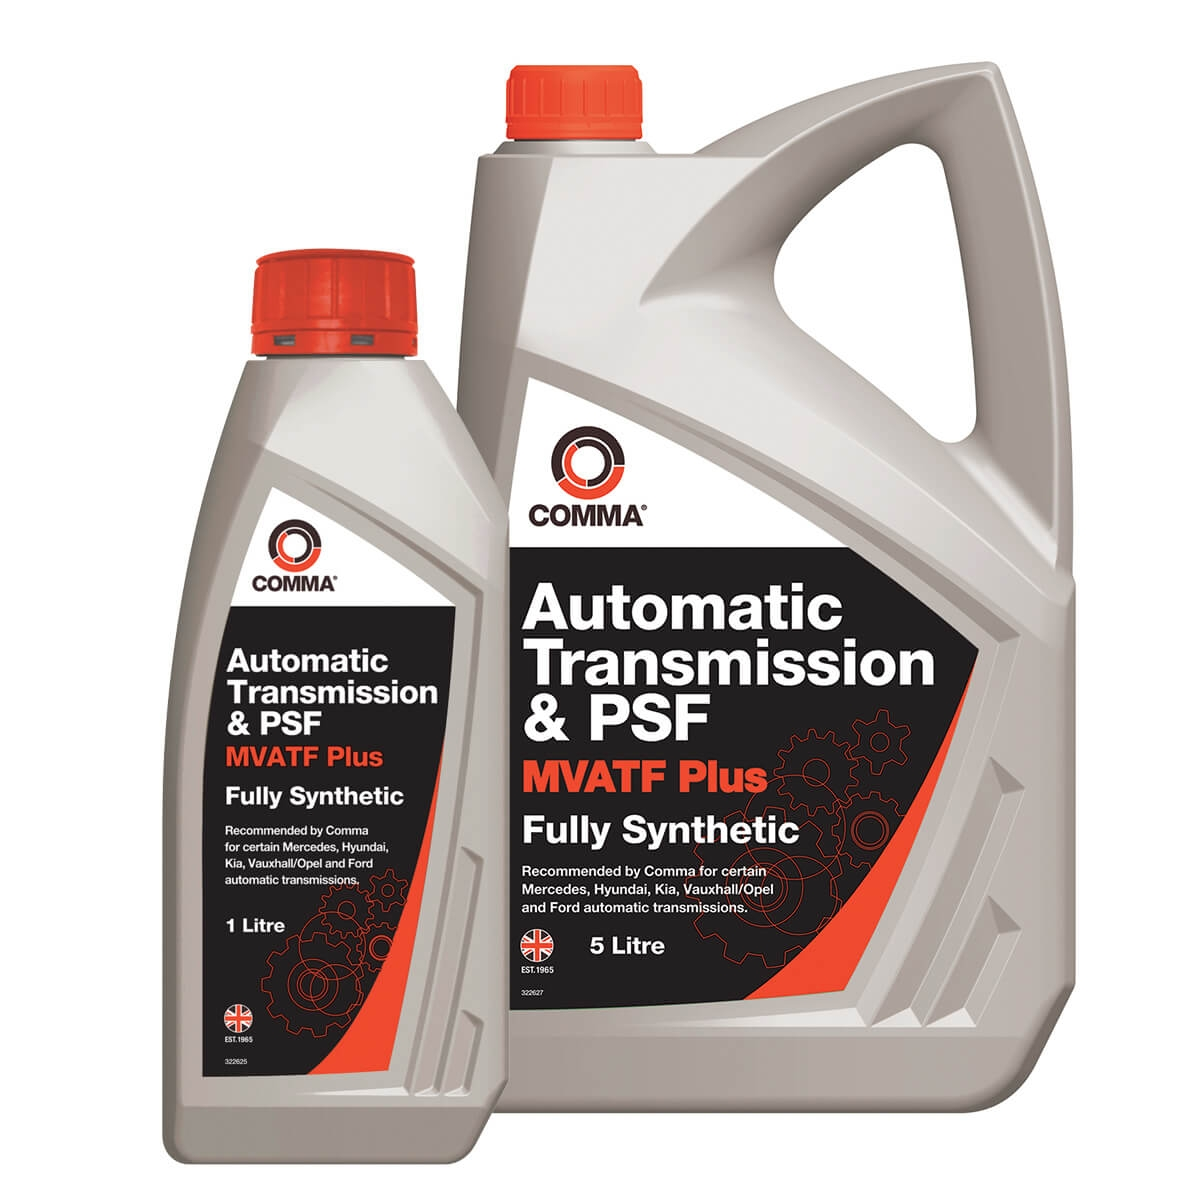 AUDI RS4 Automatic Transmission Oil